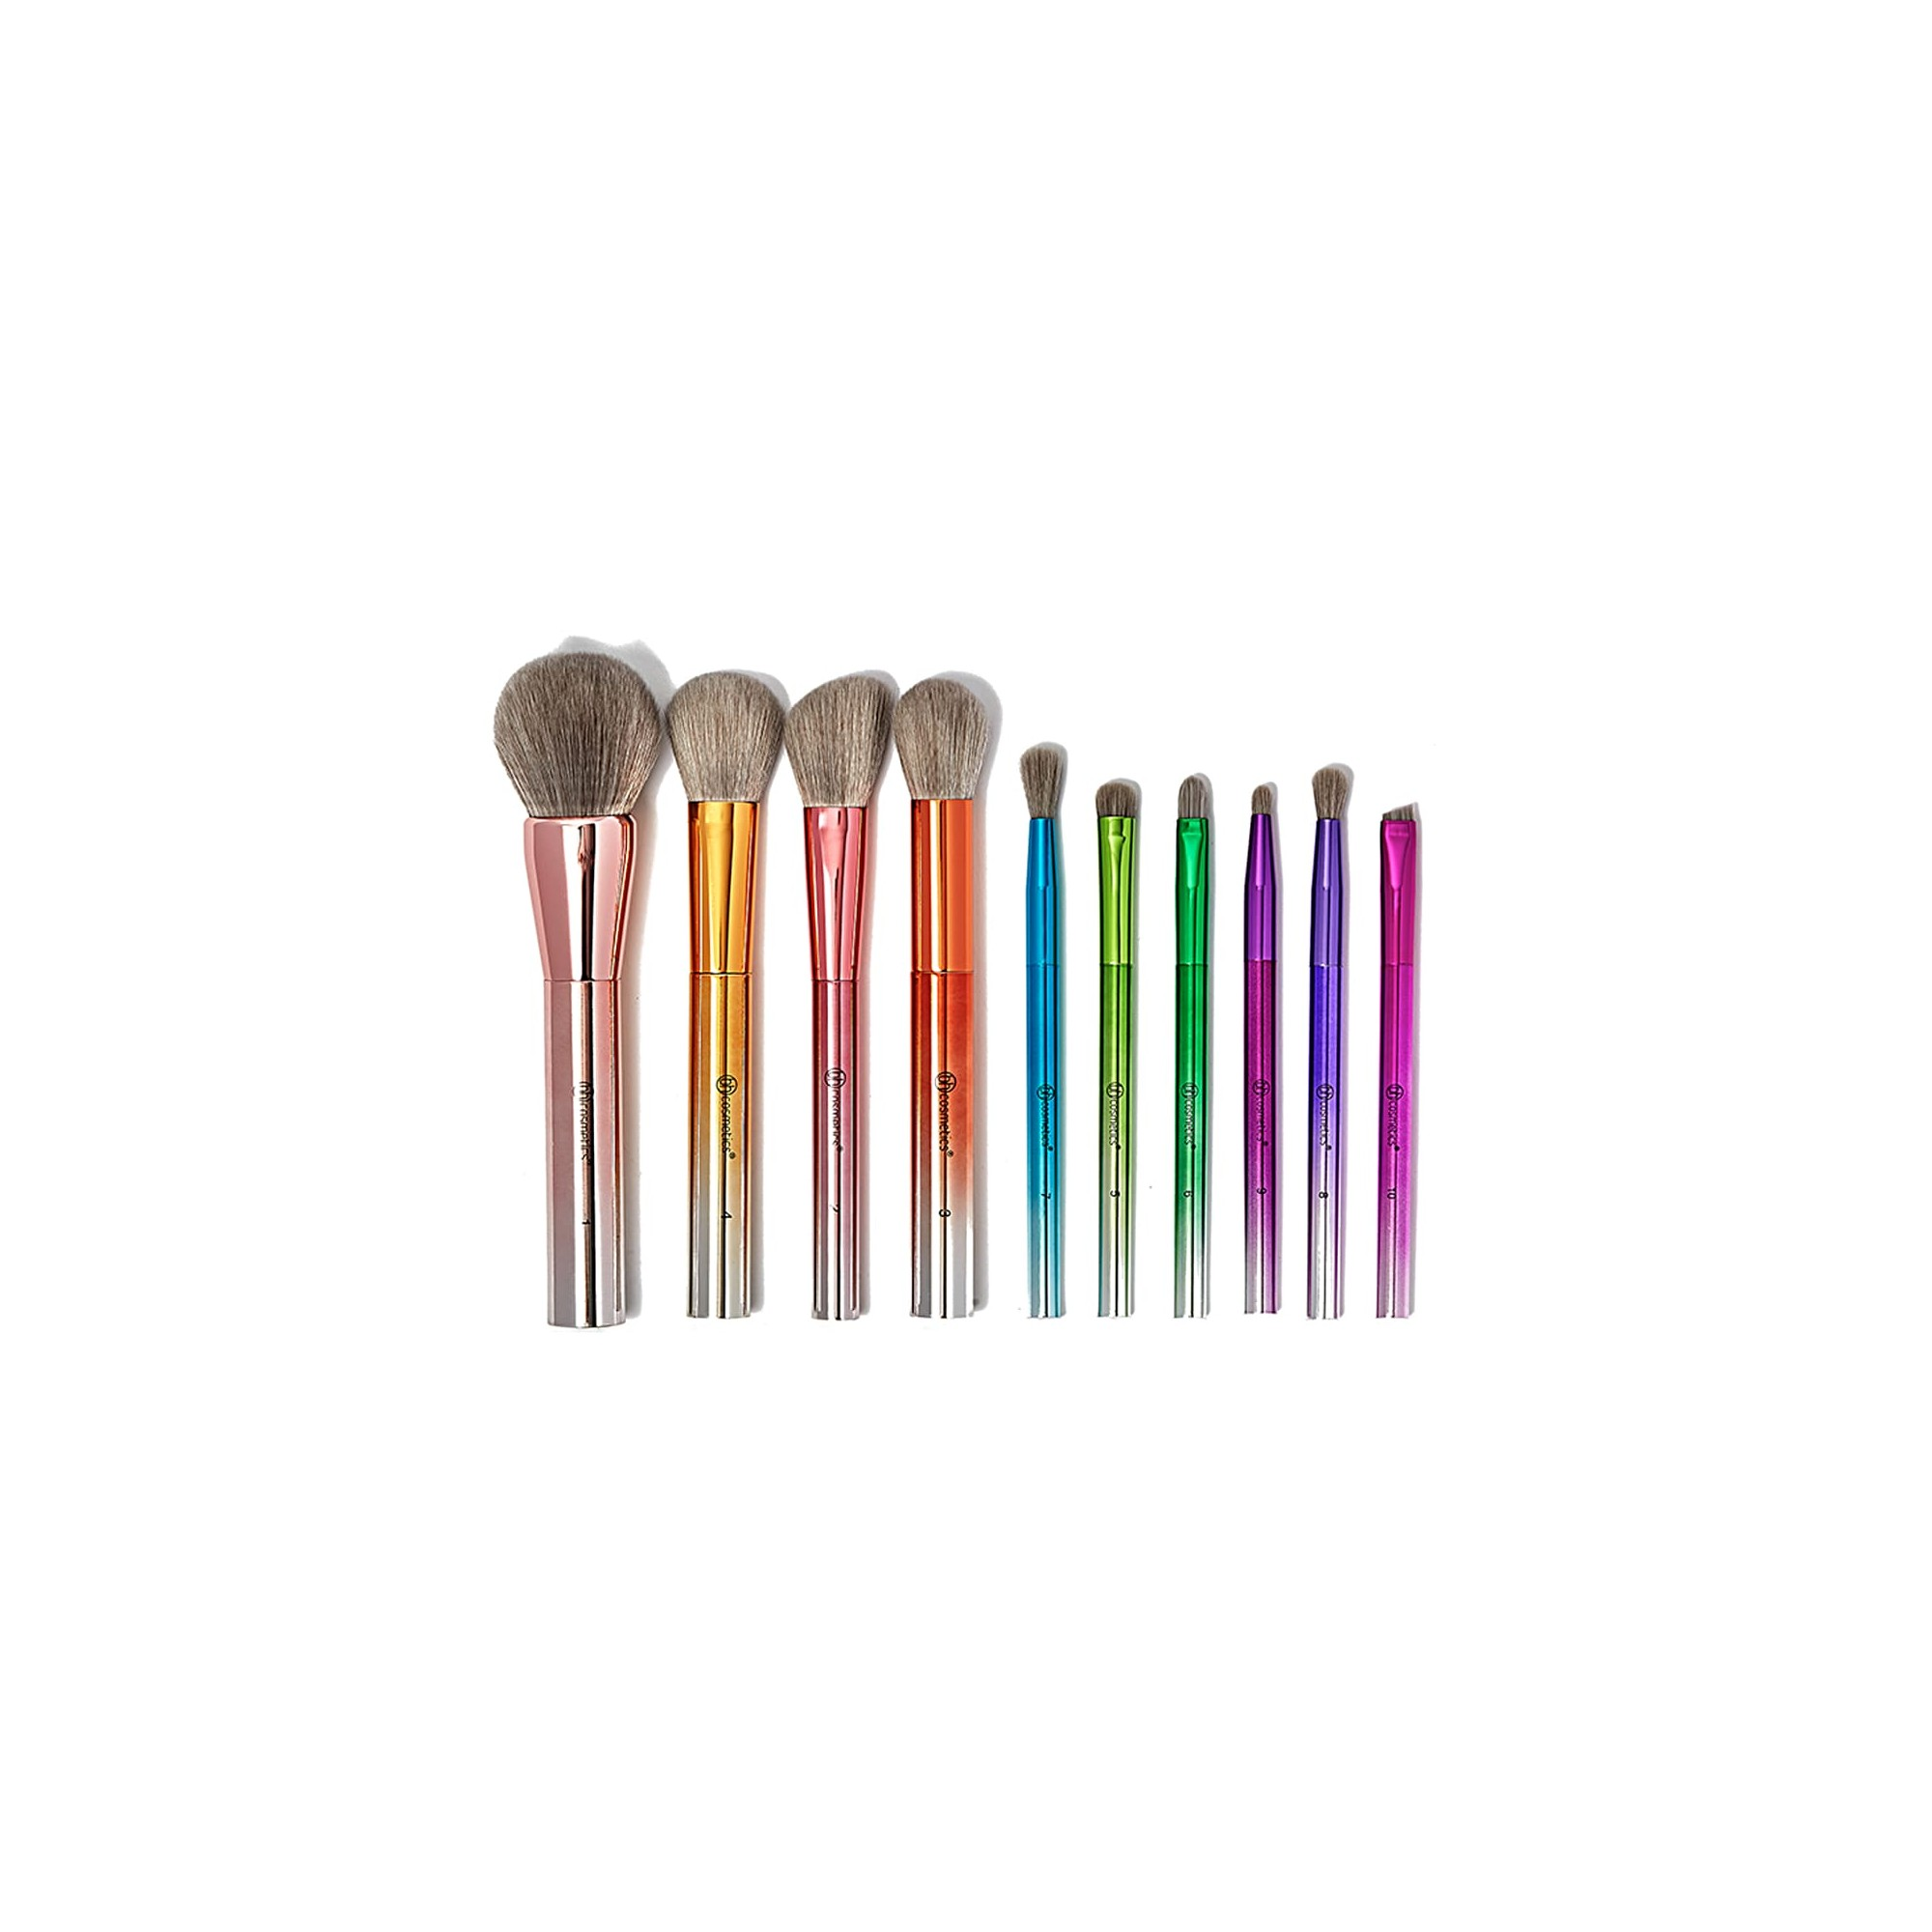 b624809e6a6 BH Cosmetics Take Me Back to Brazil Brushes 10 Piece Brush Set Pinceaux